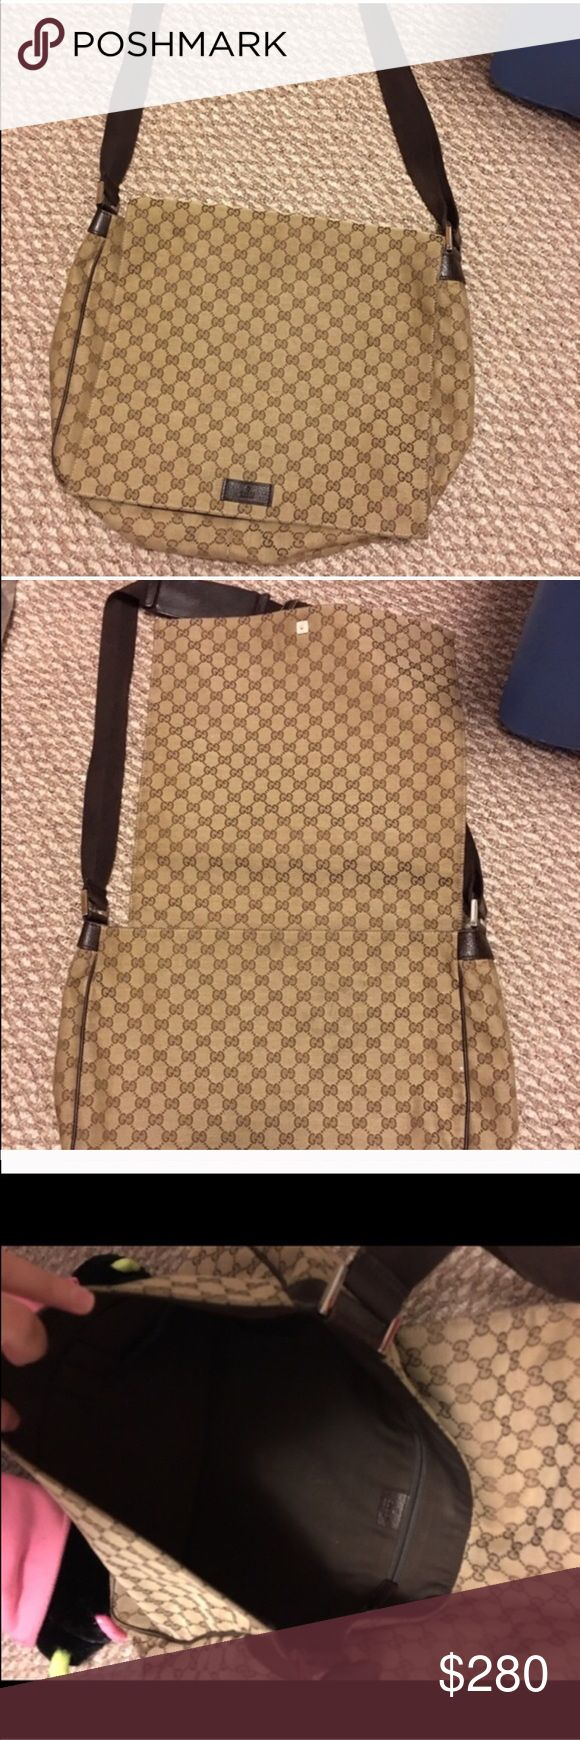 Extra Large Gucci Messenger bag Gucci extra large, fabric messenger bag, good used condition.  Can use for a laptop, books, and more. Leather in great condition damage.  Not eligible for bundle. Cross listed. Gucci Bags Crossbody Bags